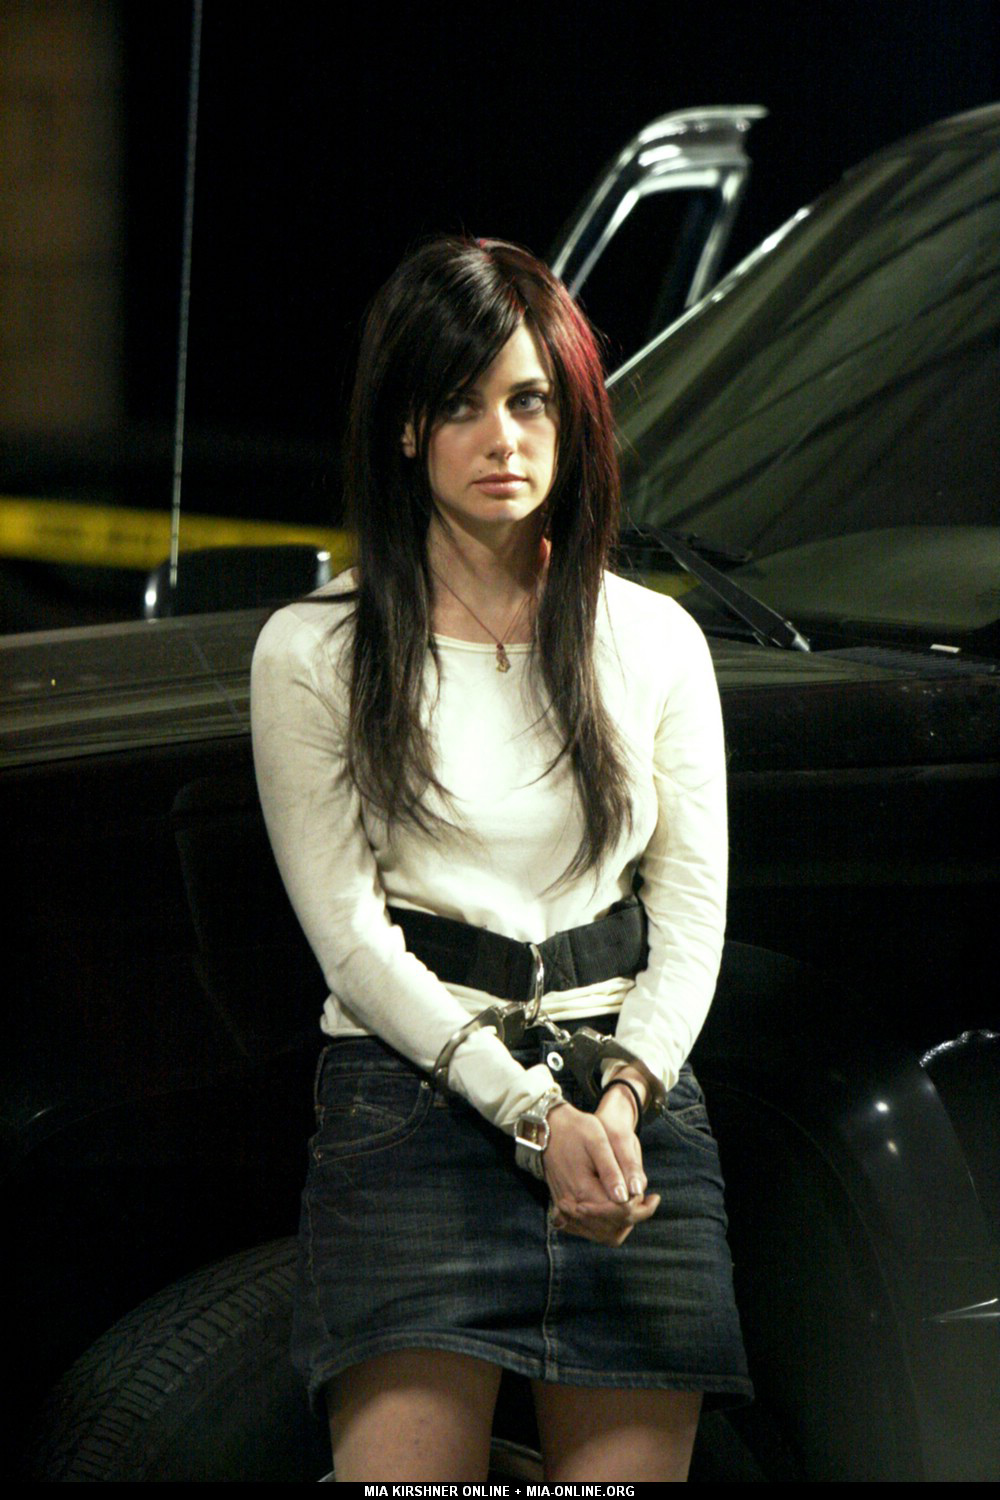 Mia - Mia Kirshner Photo (790908) - Fanpop